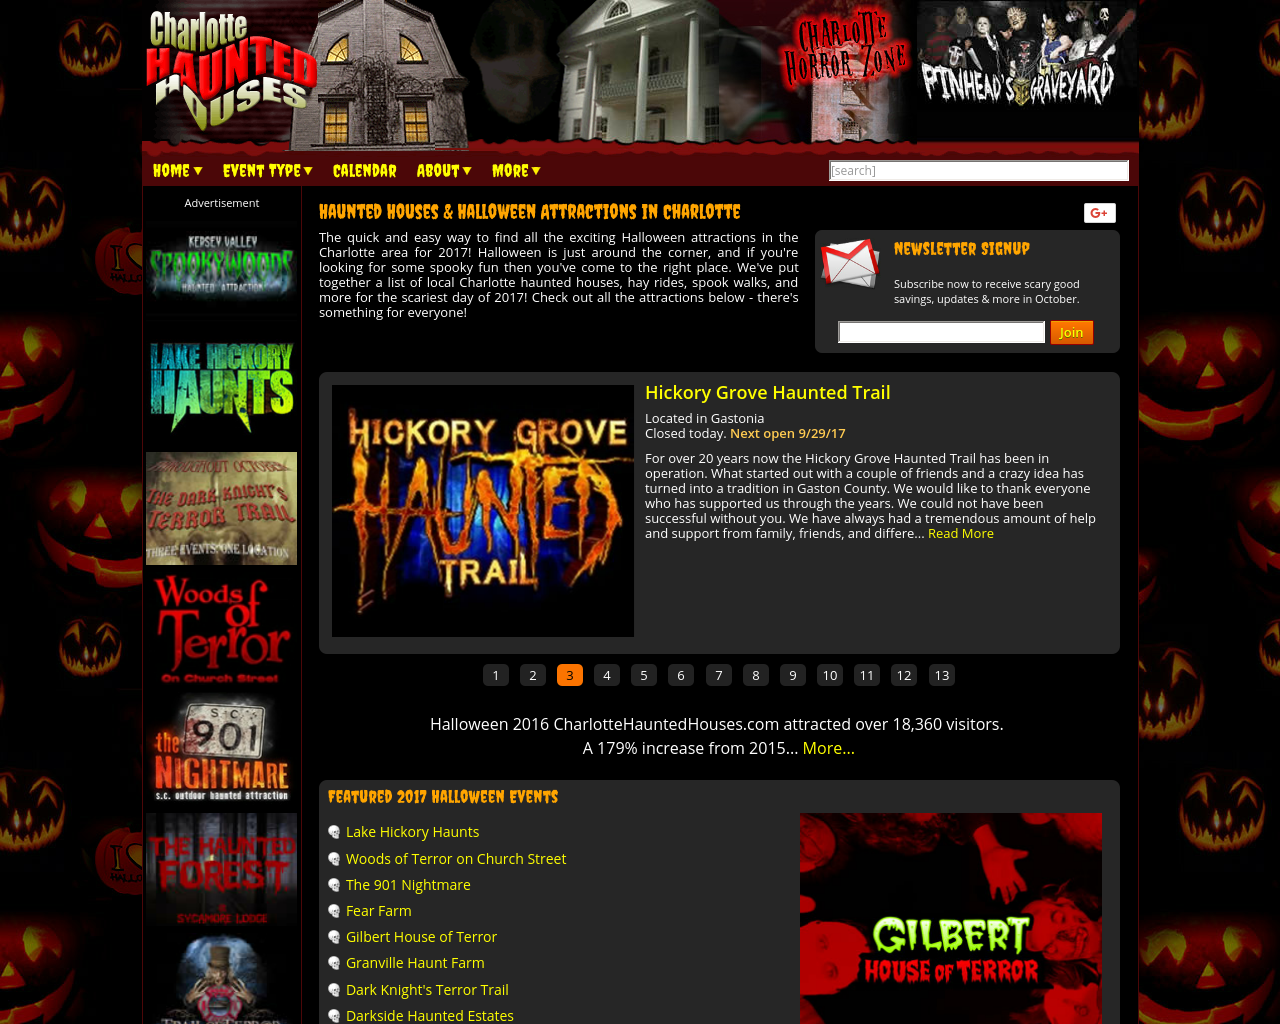 Charlotte-Haunted-Houses-Advertising-Reviews-Pricing